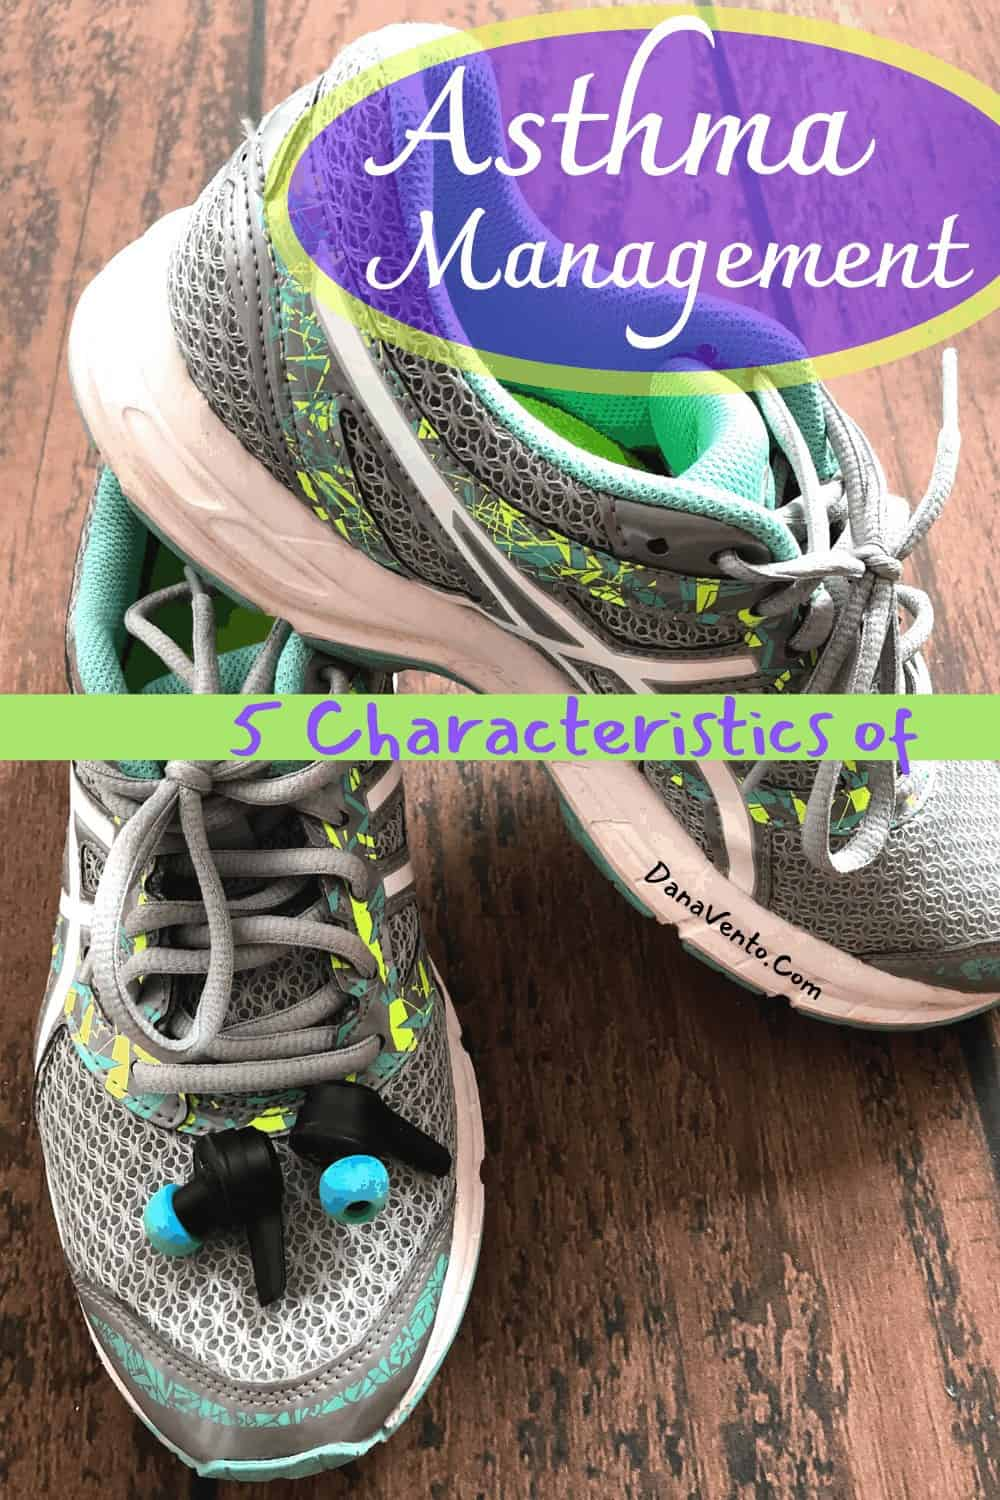 5 Characteristics of Asthma Management. Breathe Well Live Well.